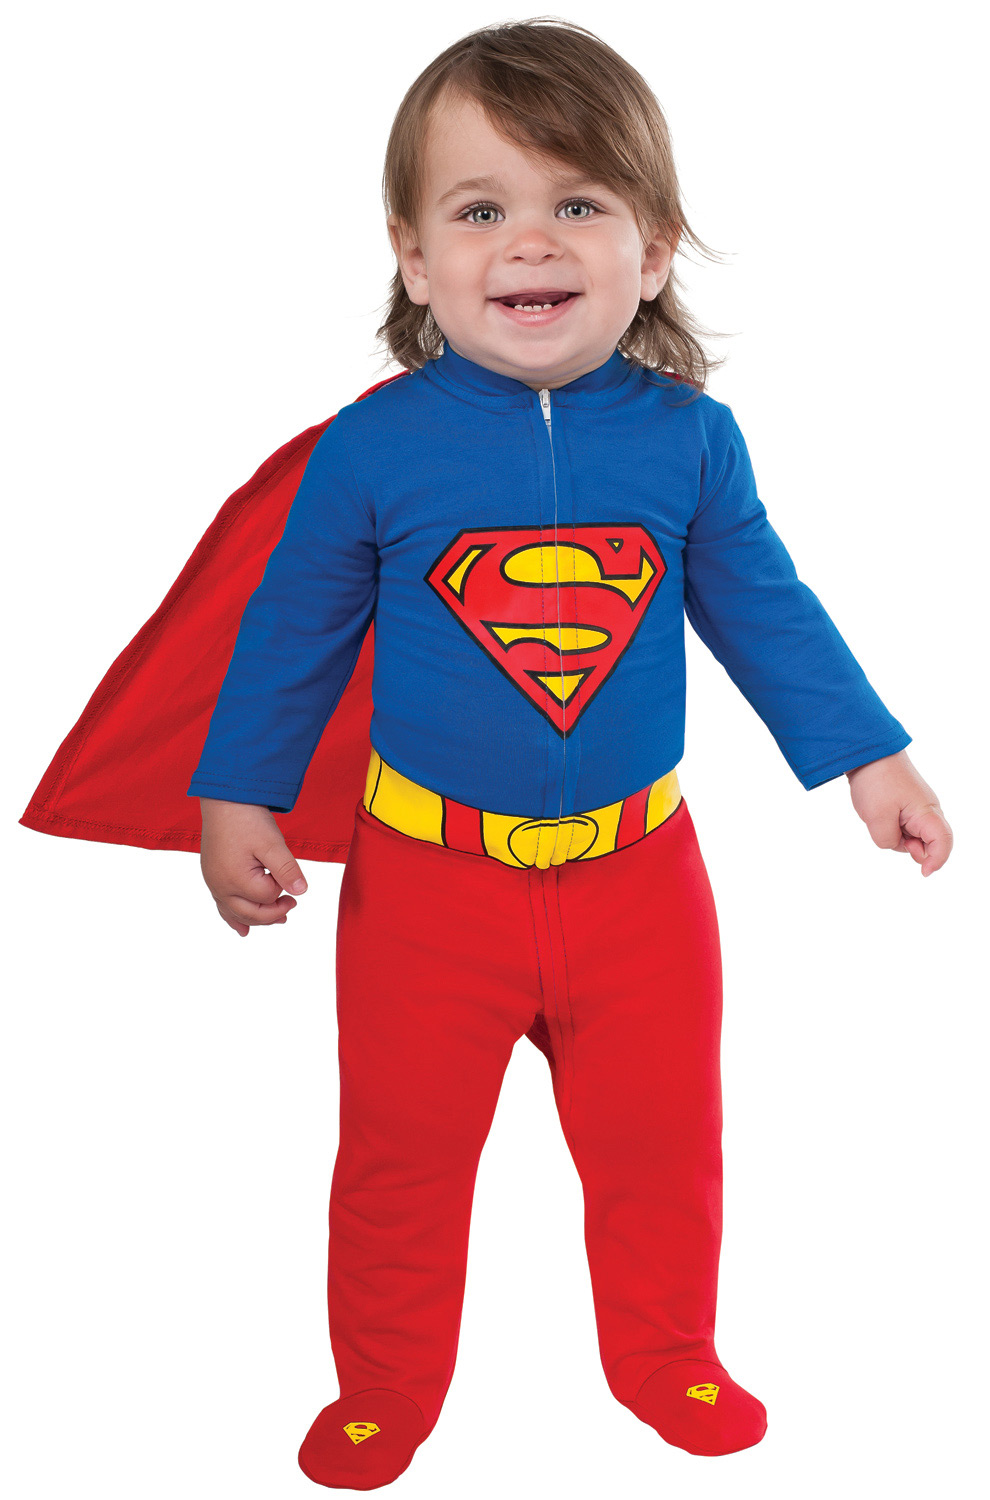 Superman or Superwoman Superhero Baby Onesie with Detachable Satin Cape and Reversible Mask, Super Hero Apparel or Costume Find this Pin and more on Boy birthday party's by Wendi Woods. 30 Superhero Ideas on Etsy - The Scrap Shoppe.